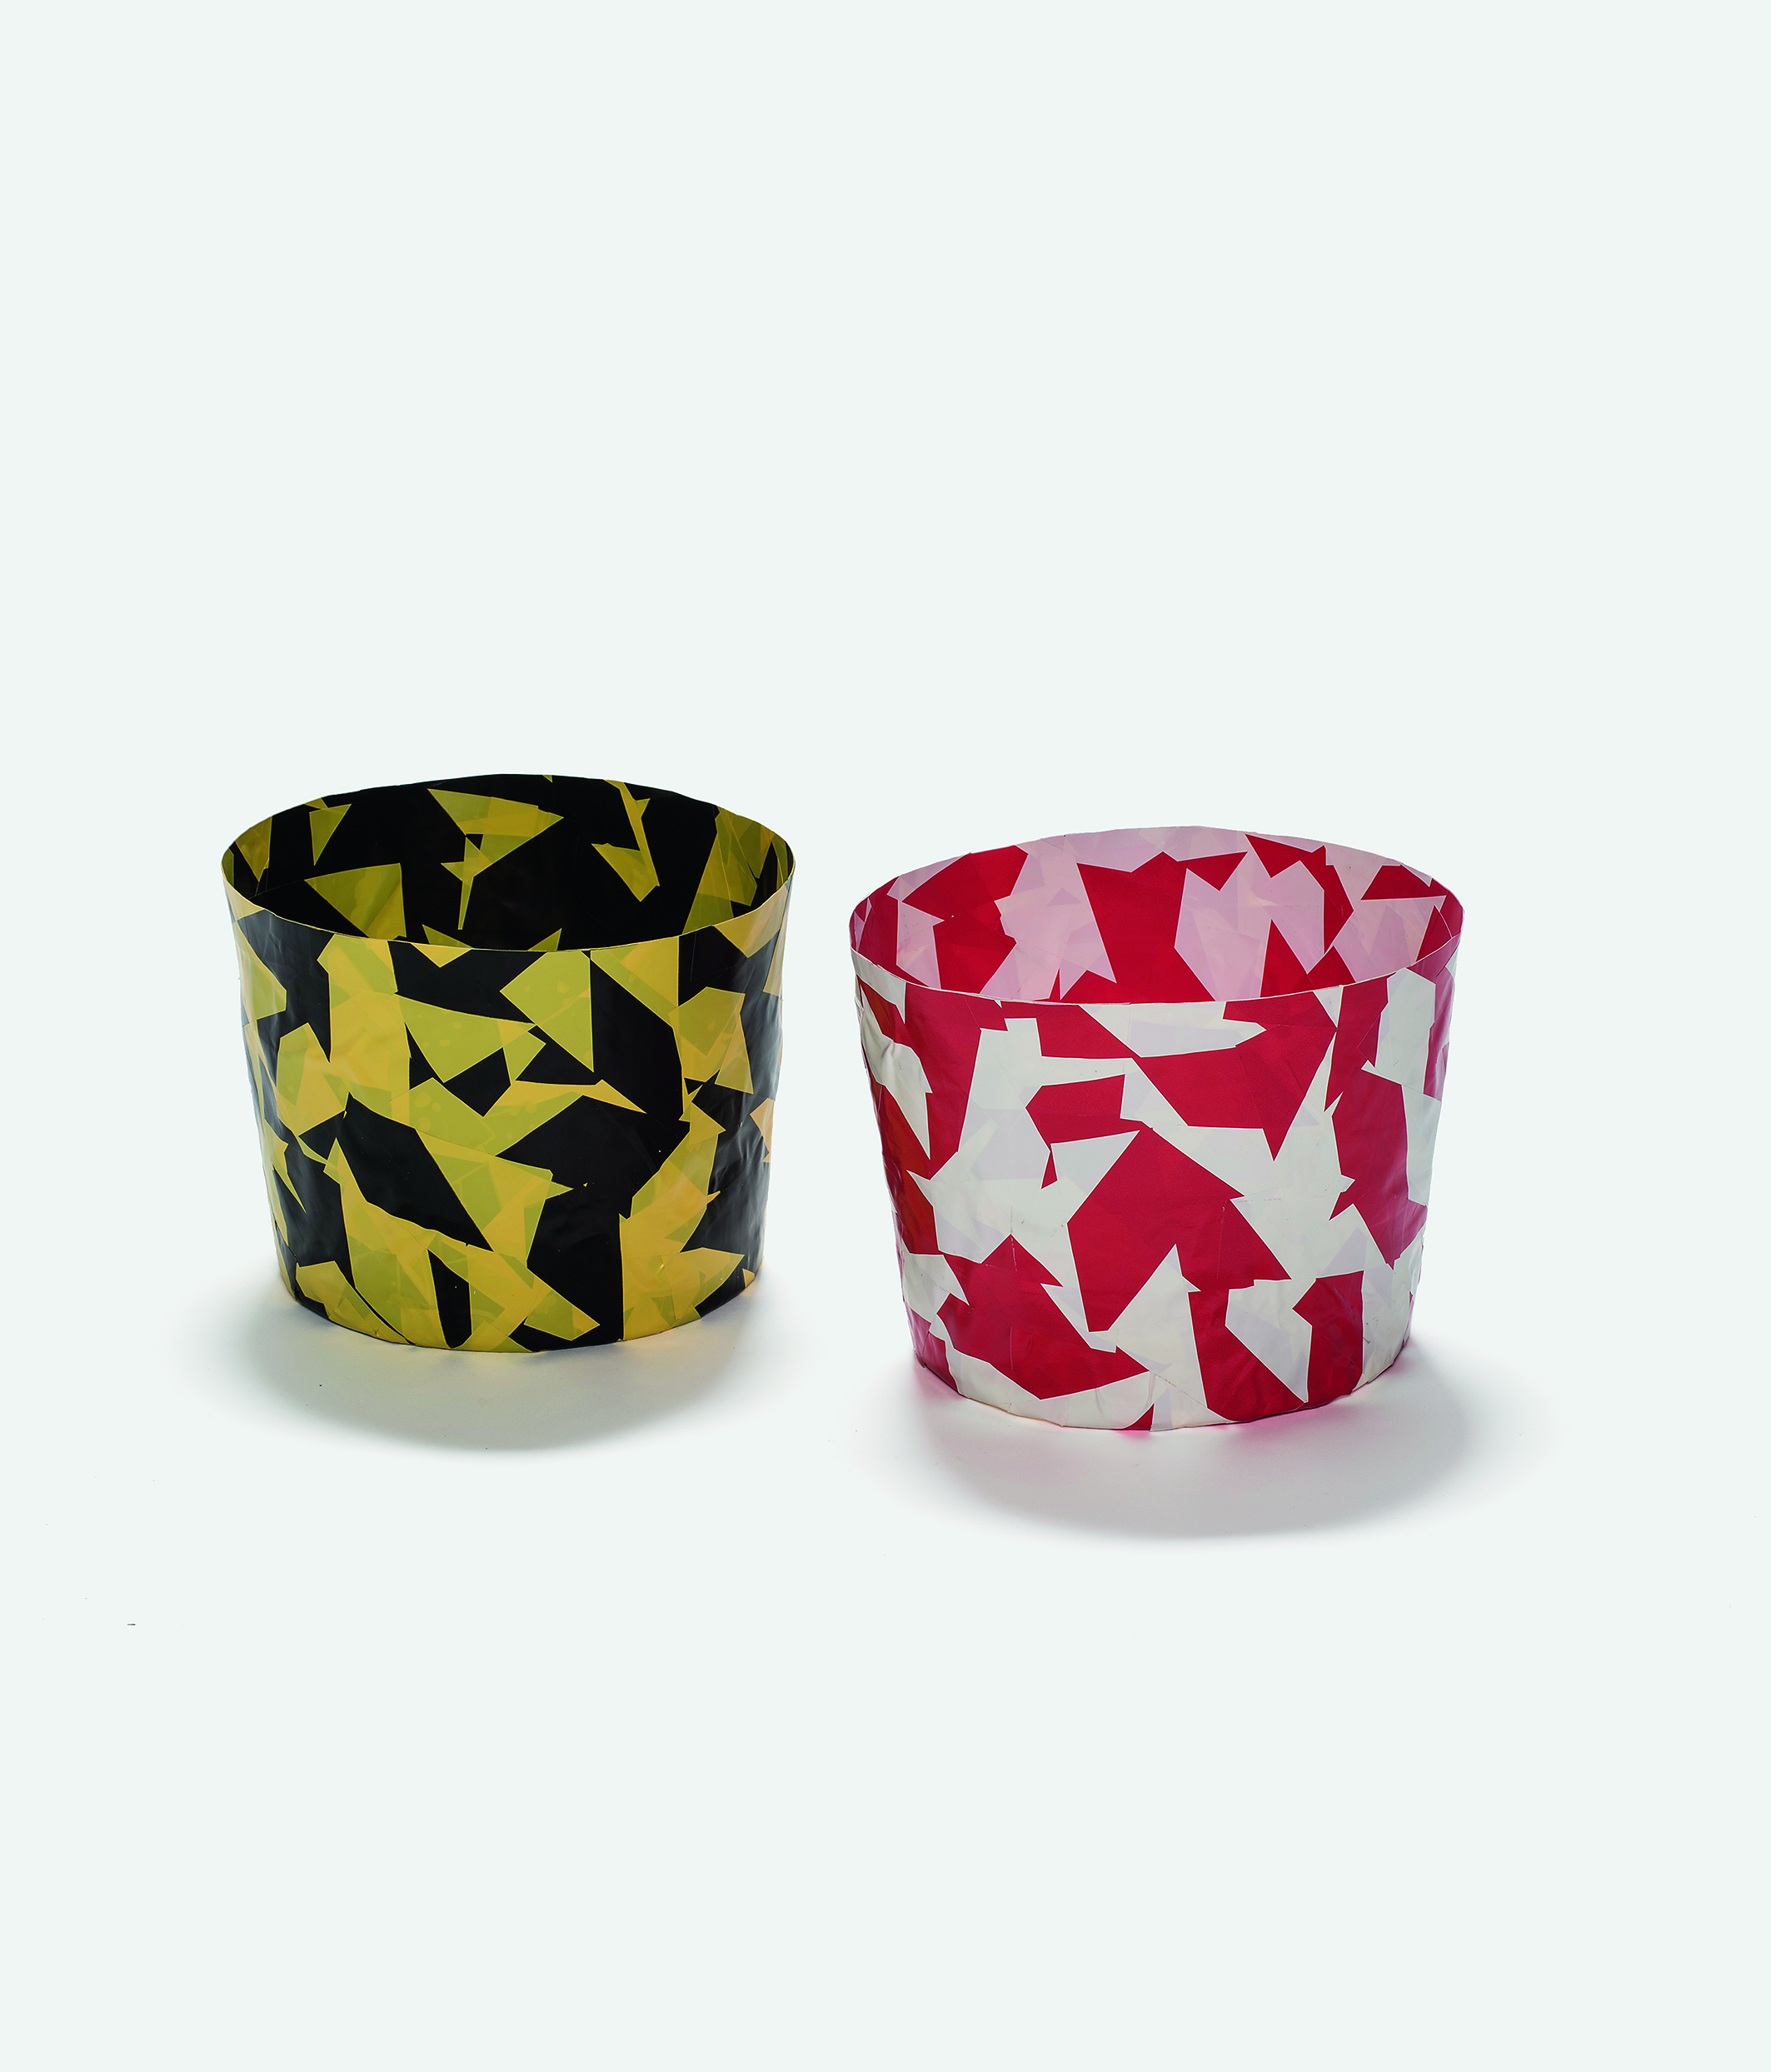 DEU-Peter-Schäfer-Tape-Pot_high-tiled-Tape-Pot_razzle-dazzle-highres